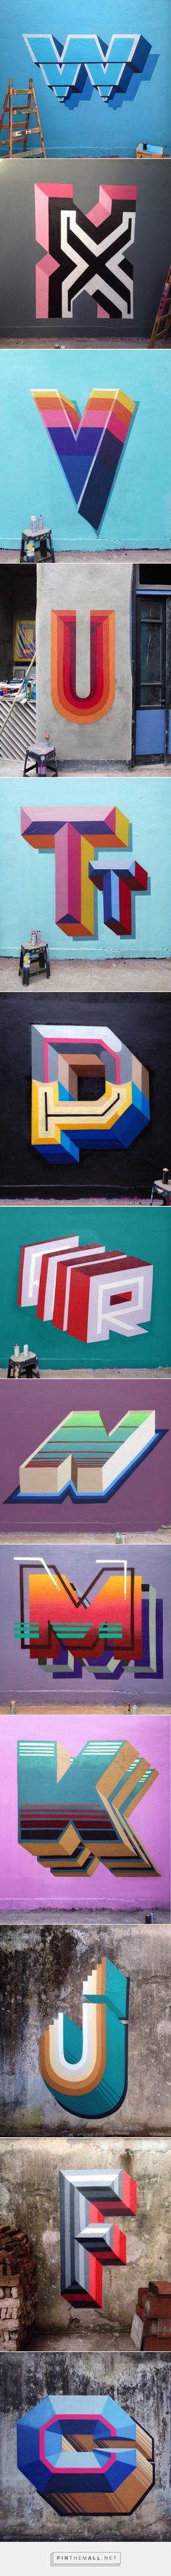 Colorful 3D Typography Mural – Fubiz Media - created via https://pinthemall.net